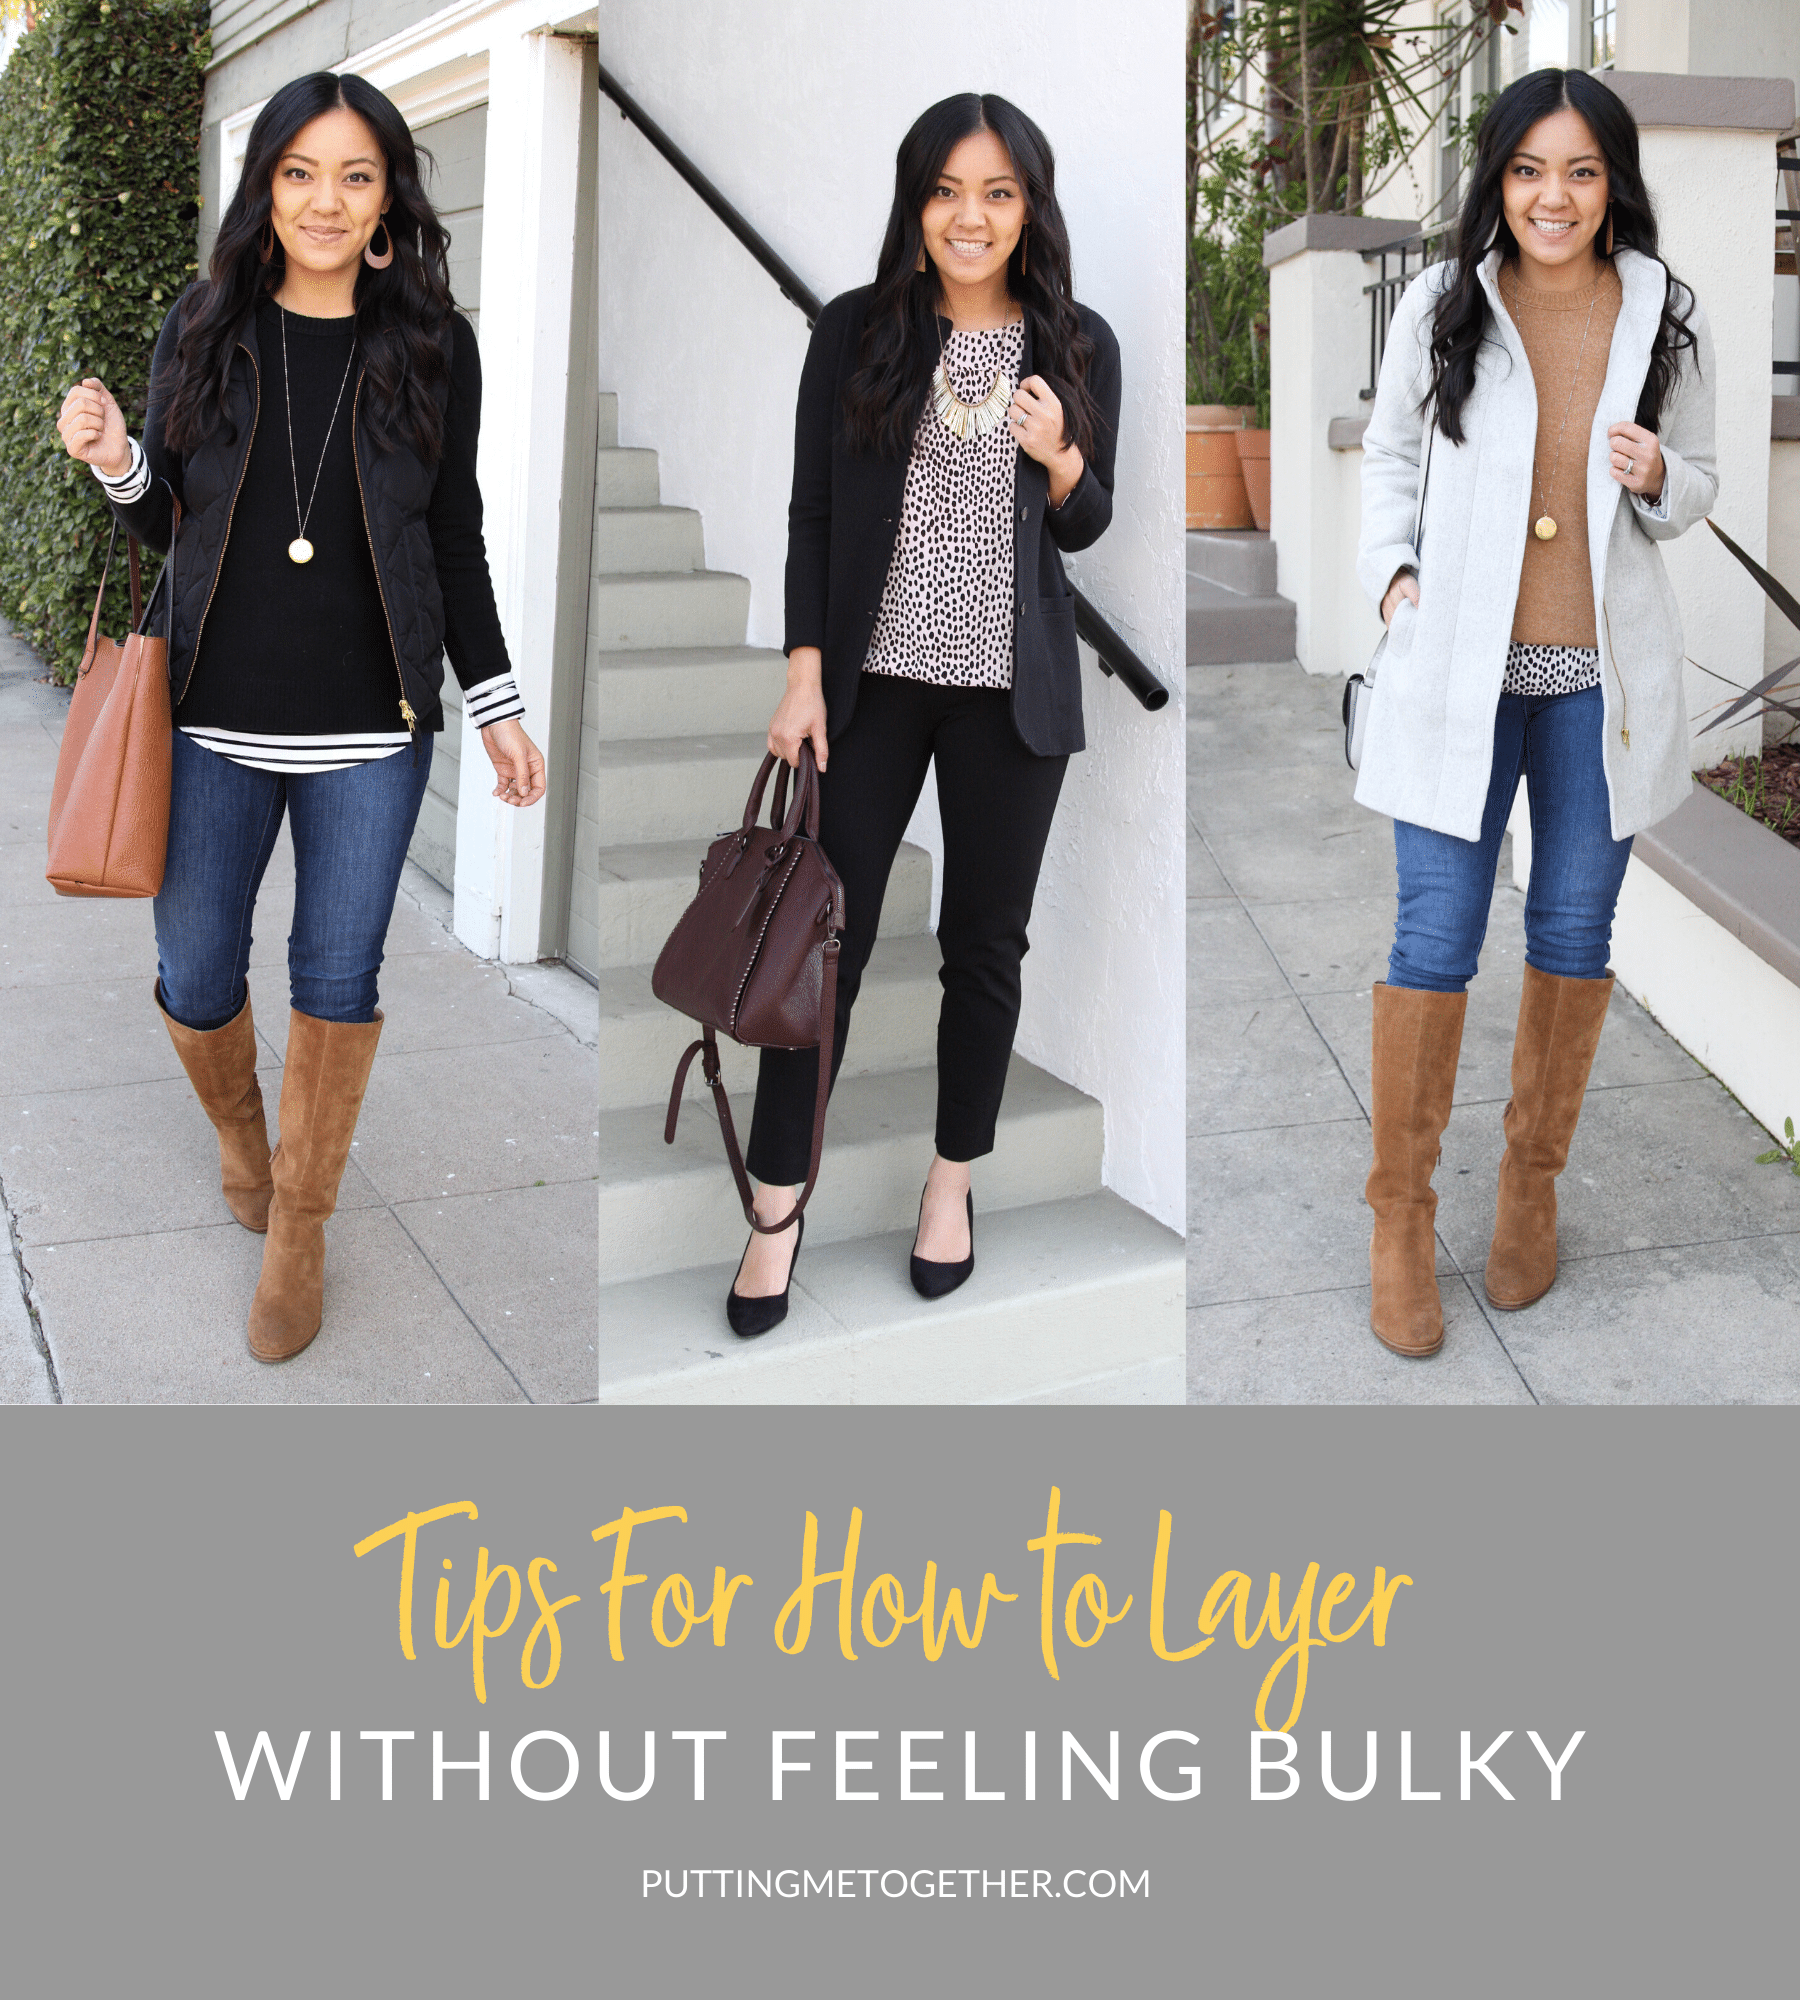 Tips for How to Layer Without Feeling Bulky